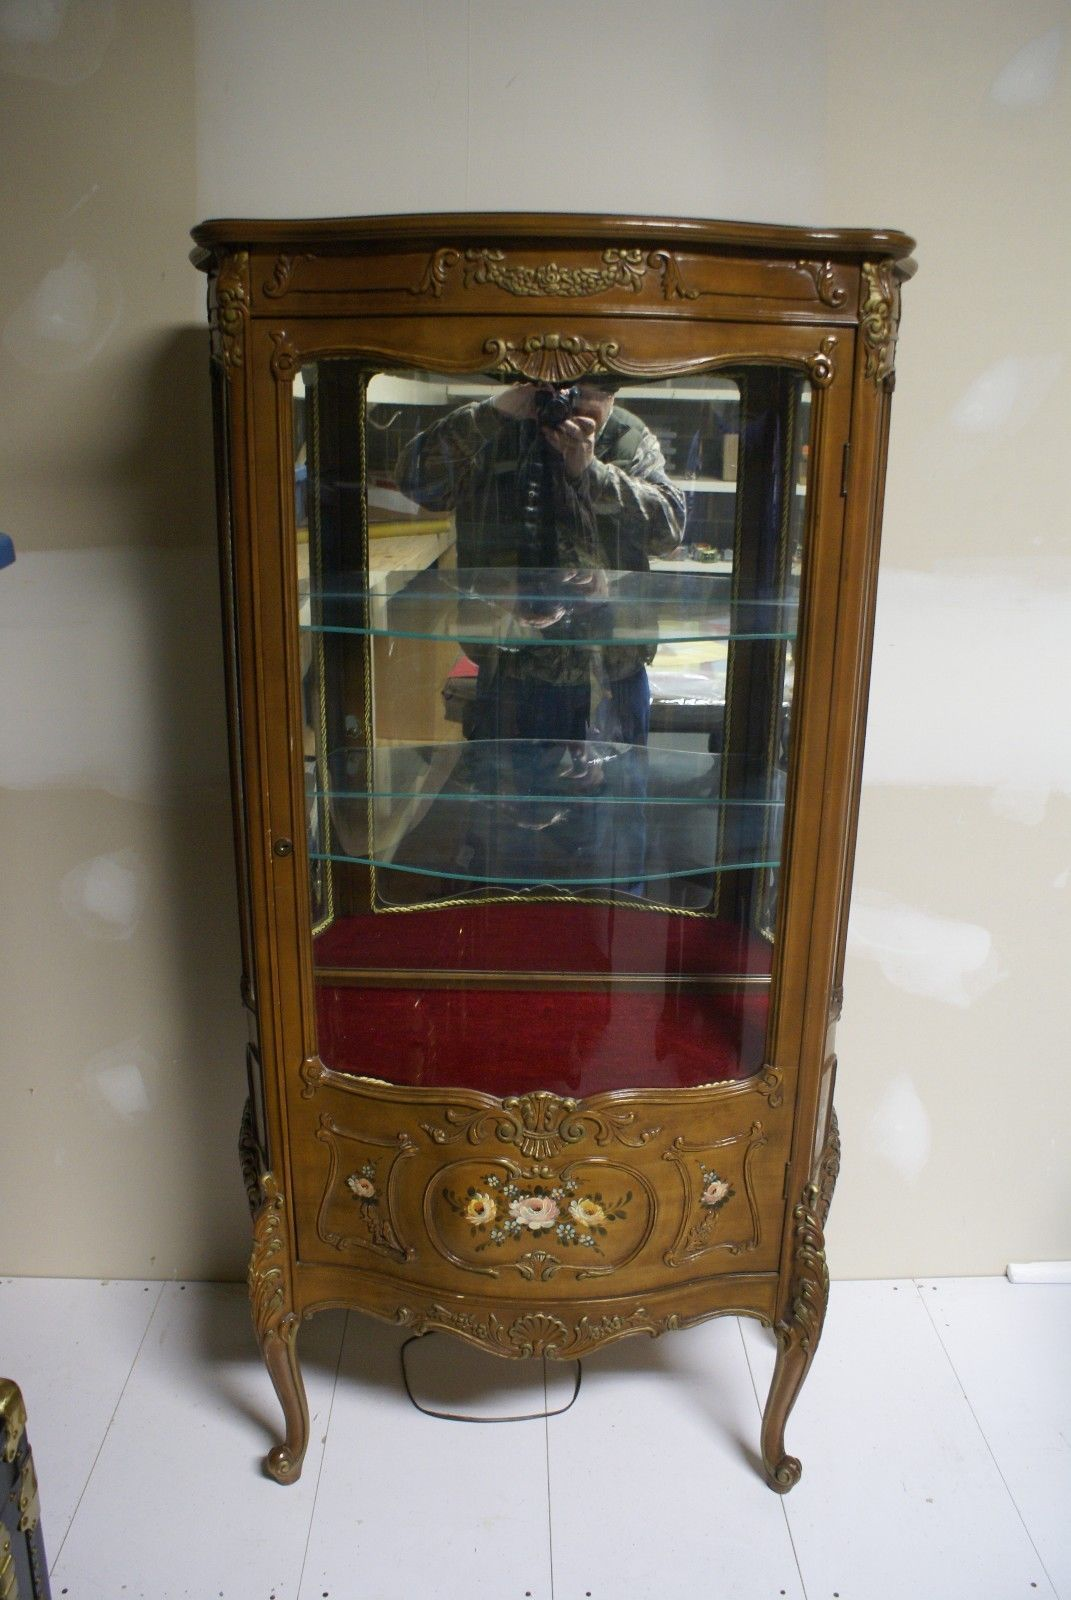 Vintage / Antique Lighted Curved Glass Curio Cabinet - Vintage / Antique Lighted Curved Glass Curio Cabinet Furniture In